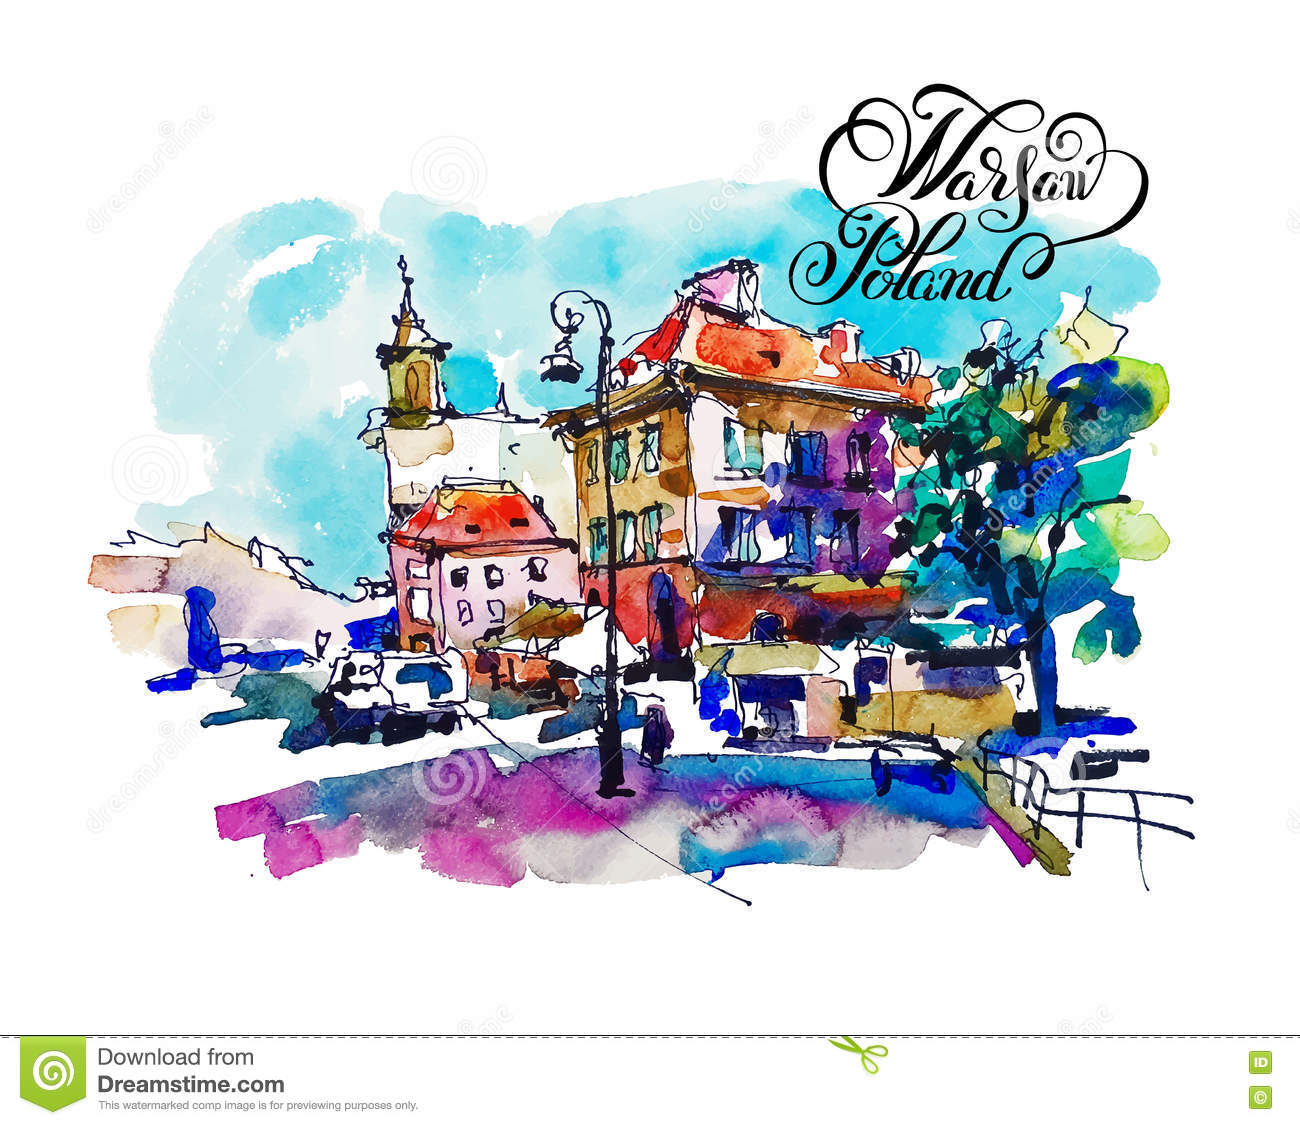 watercolor-sketching-old-town-historical-buildings-warsaw-capital-city-poland-cityscape-travel-book-illustration-greeting-78799558.jpg